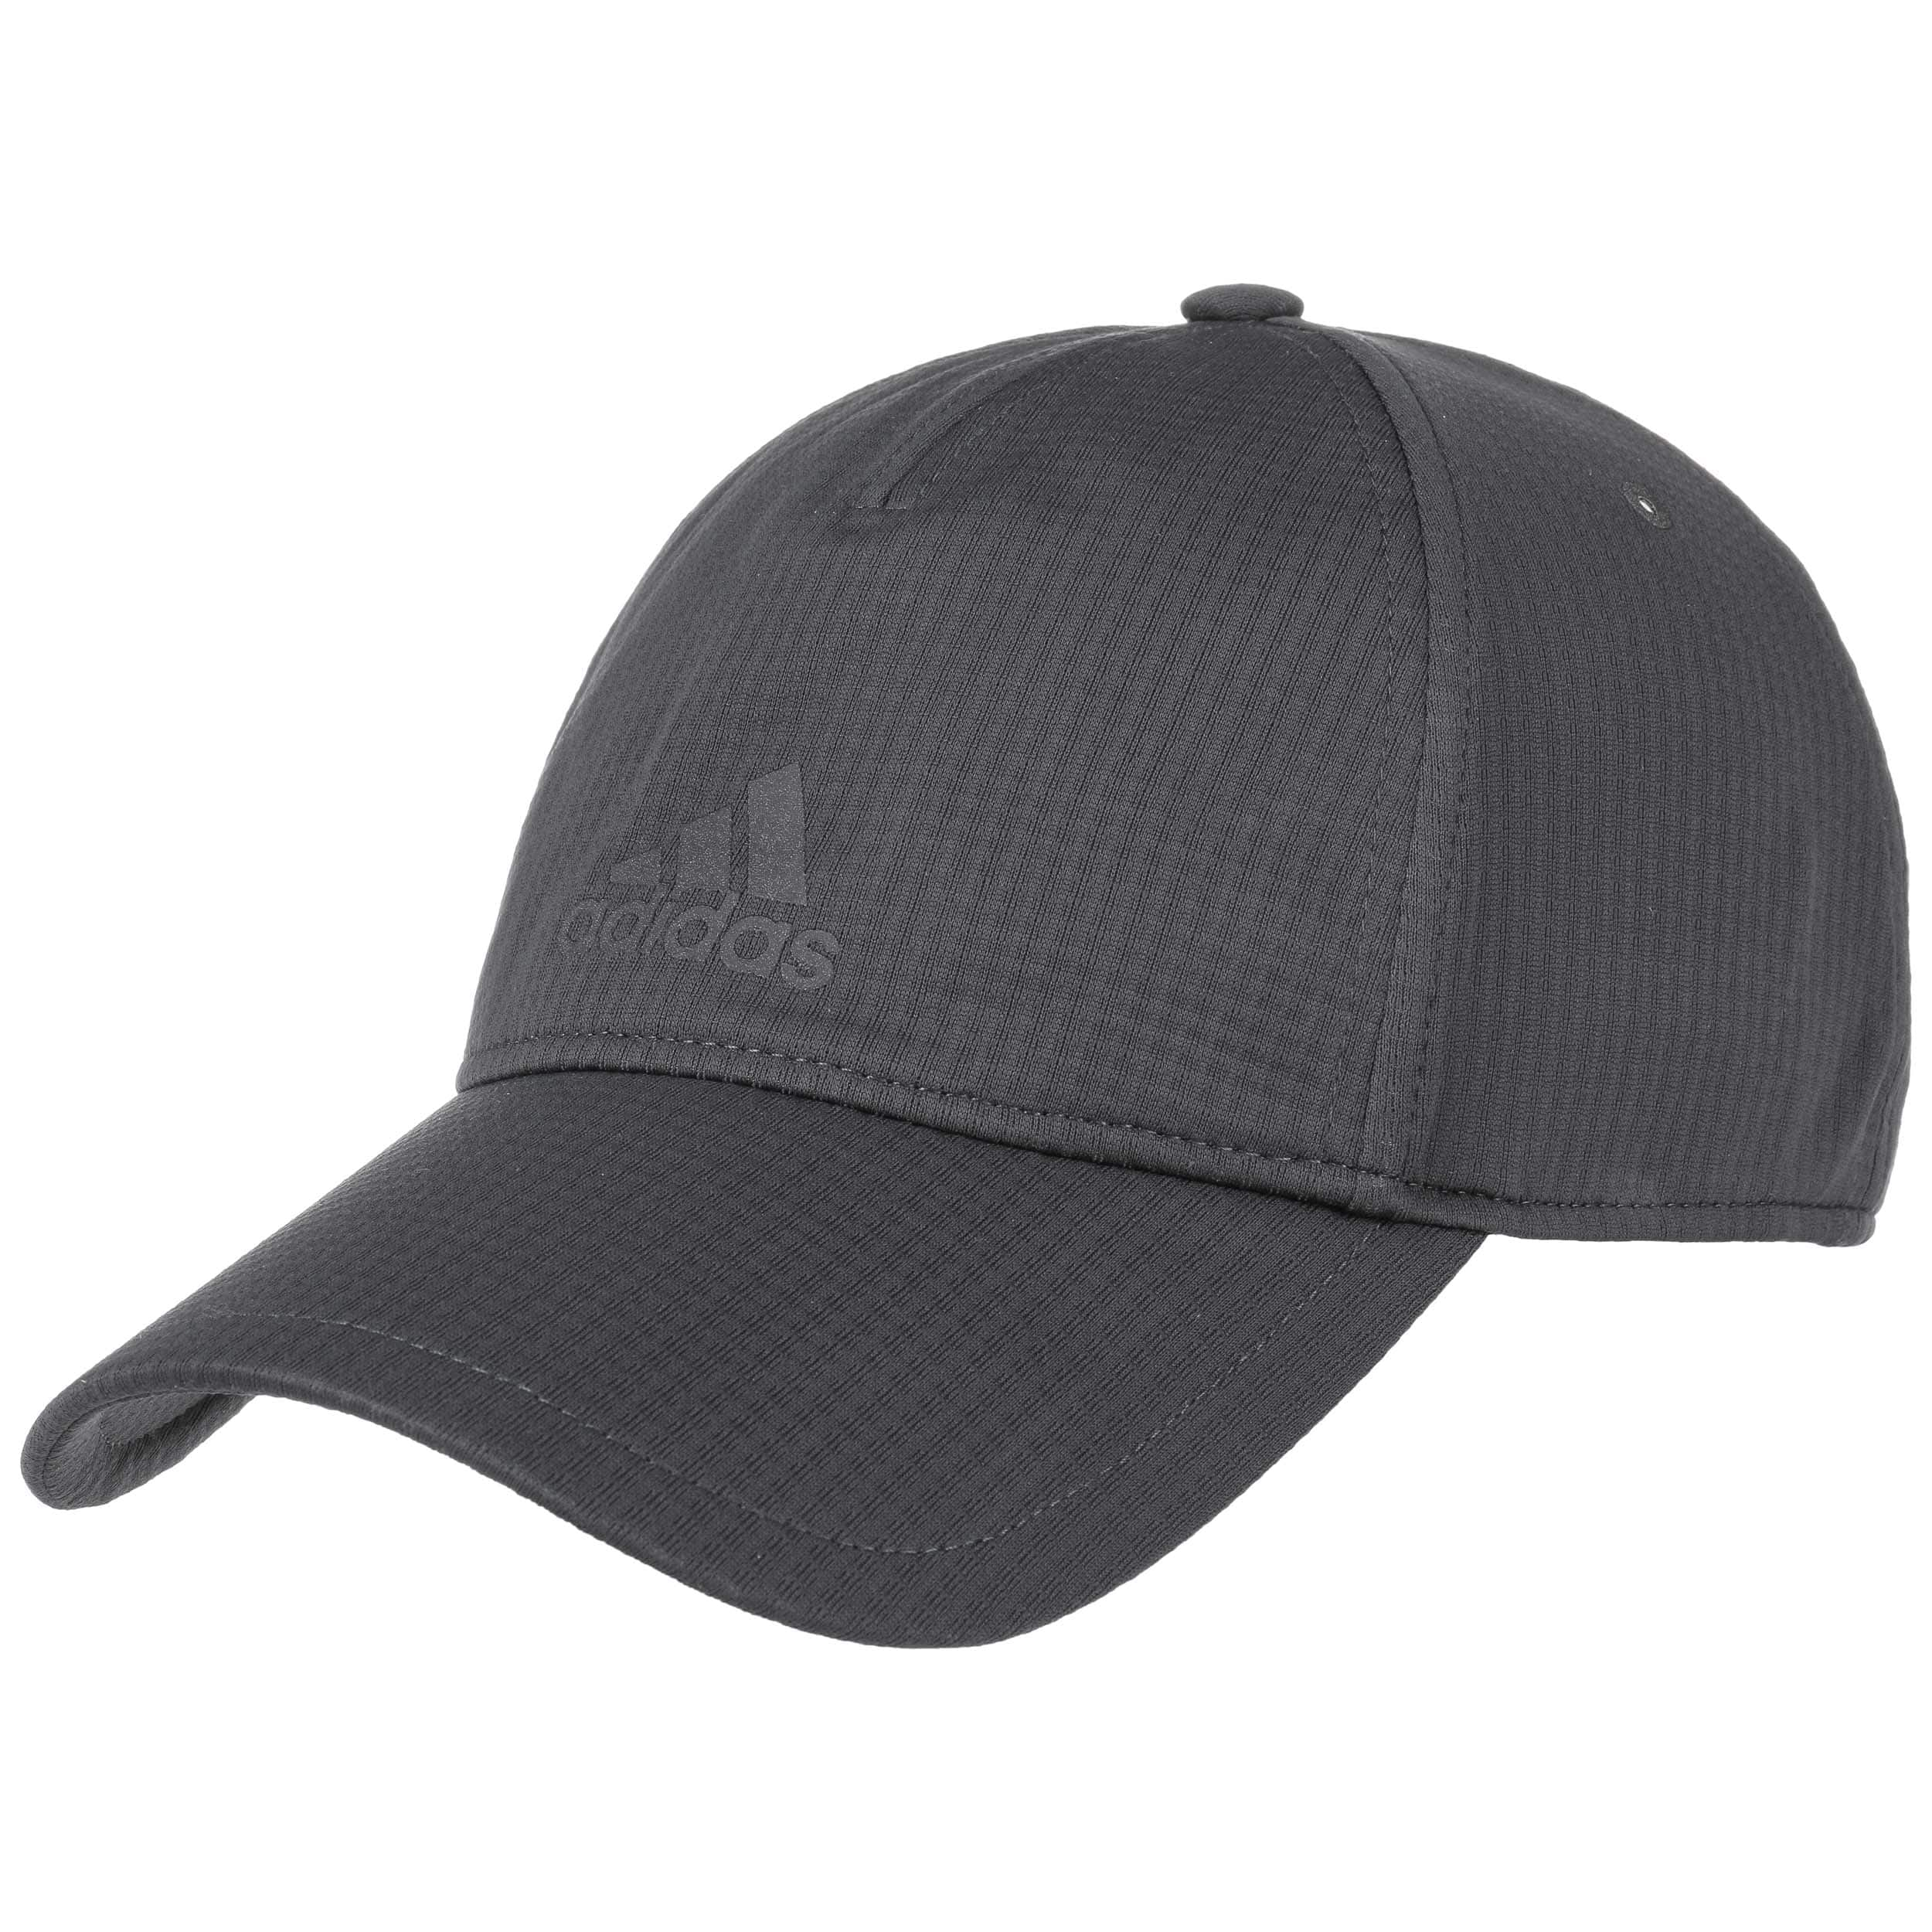 ... C40 Climachill Cap by adidas - anthracite 5 ... 8cb87a49509